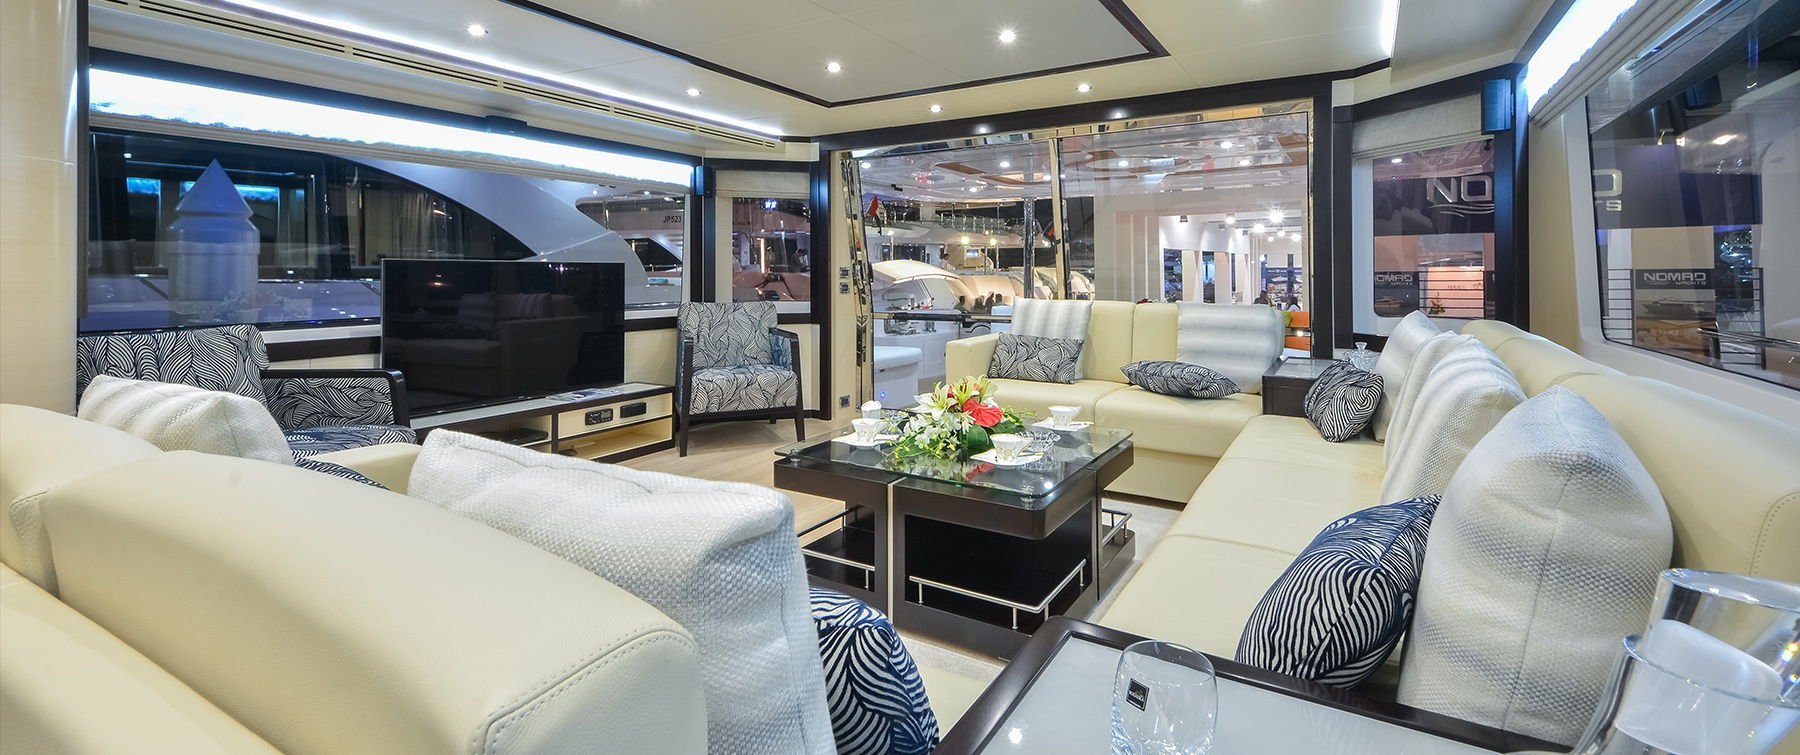 The luxurious interior of the Nomad 75